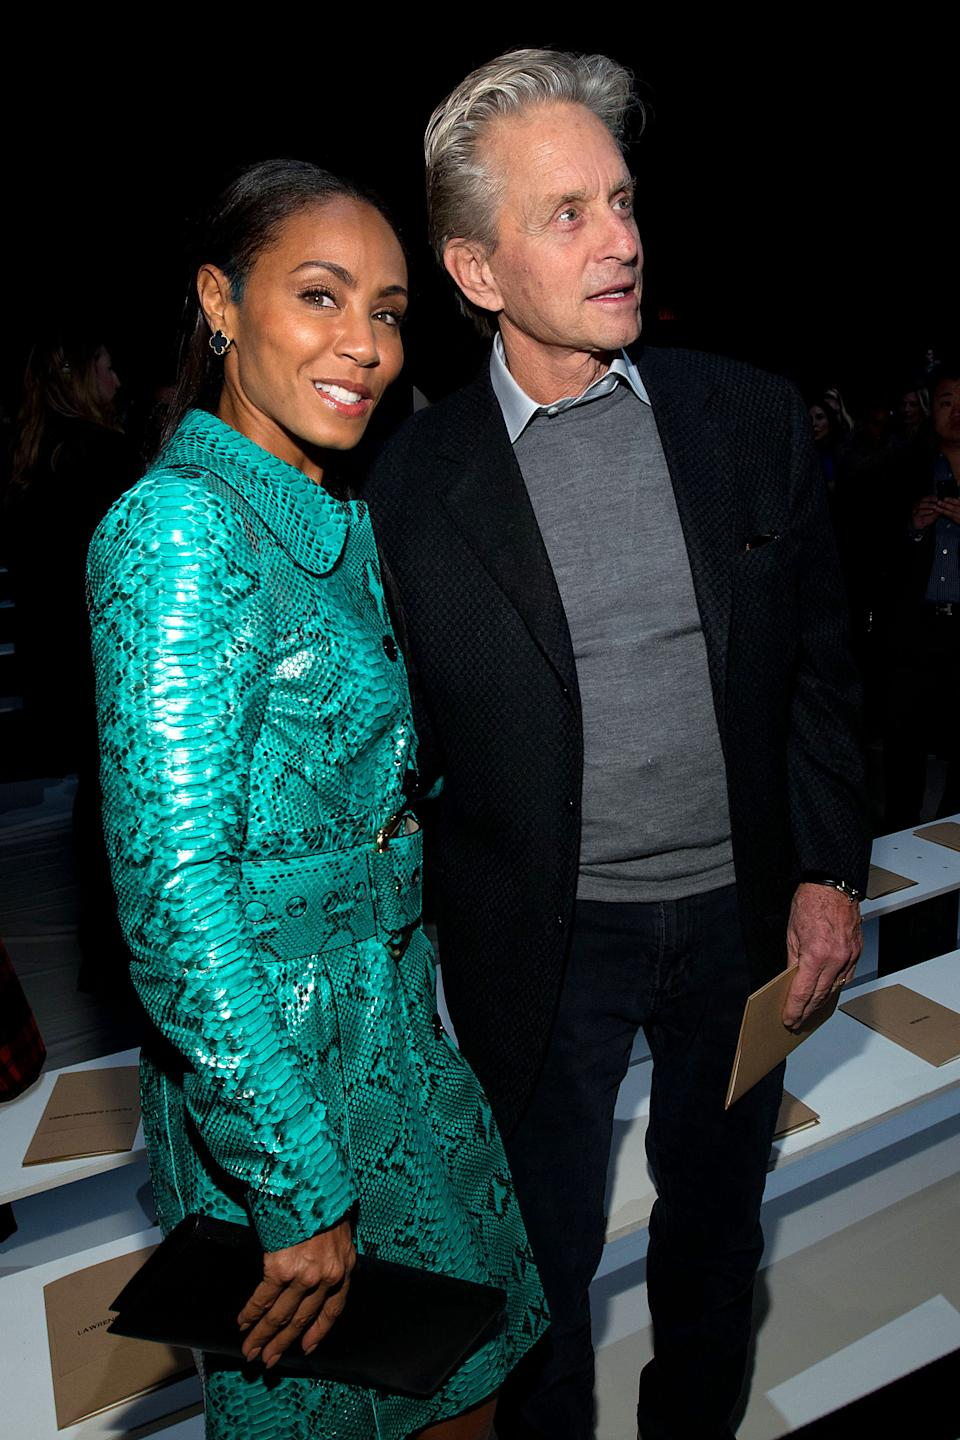 Jada Pinkett Smith, left, and Michael Douglas attend the Fall 2013 Michael Kors Runway Show, on Wednesday, Feb. 13, 2013 in New York. (Photo by Dario Cantatore/Invision/AP)